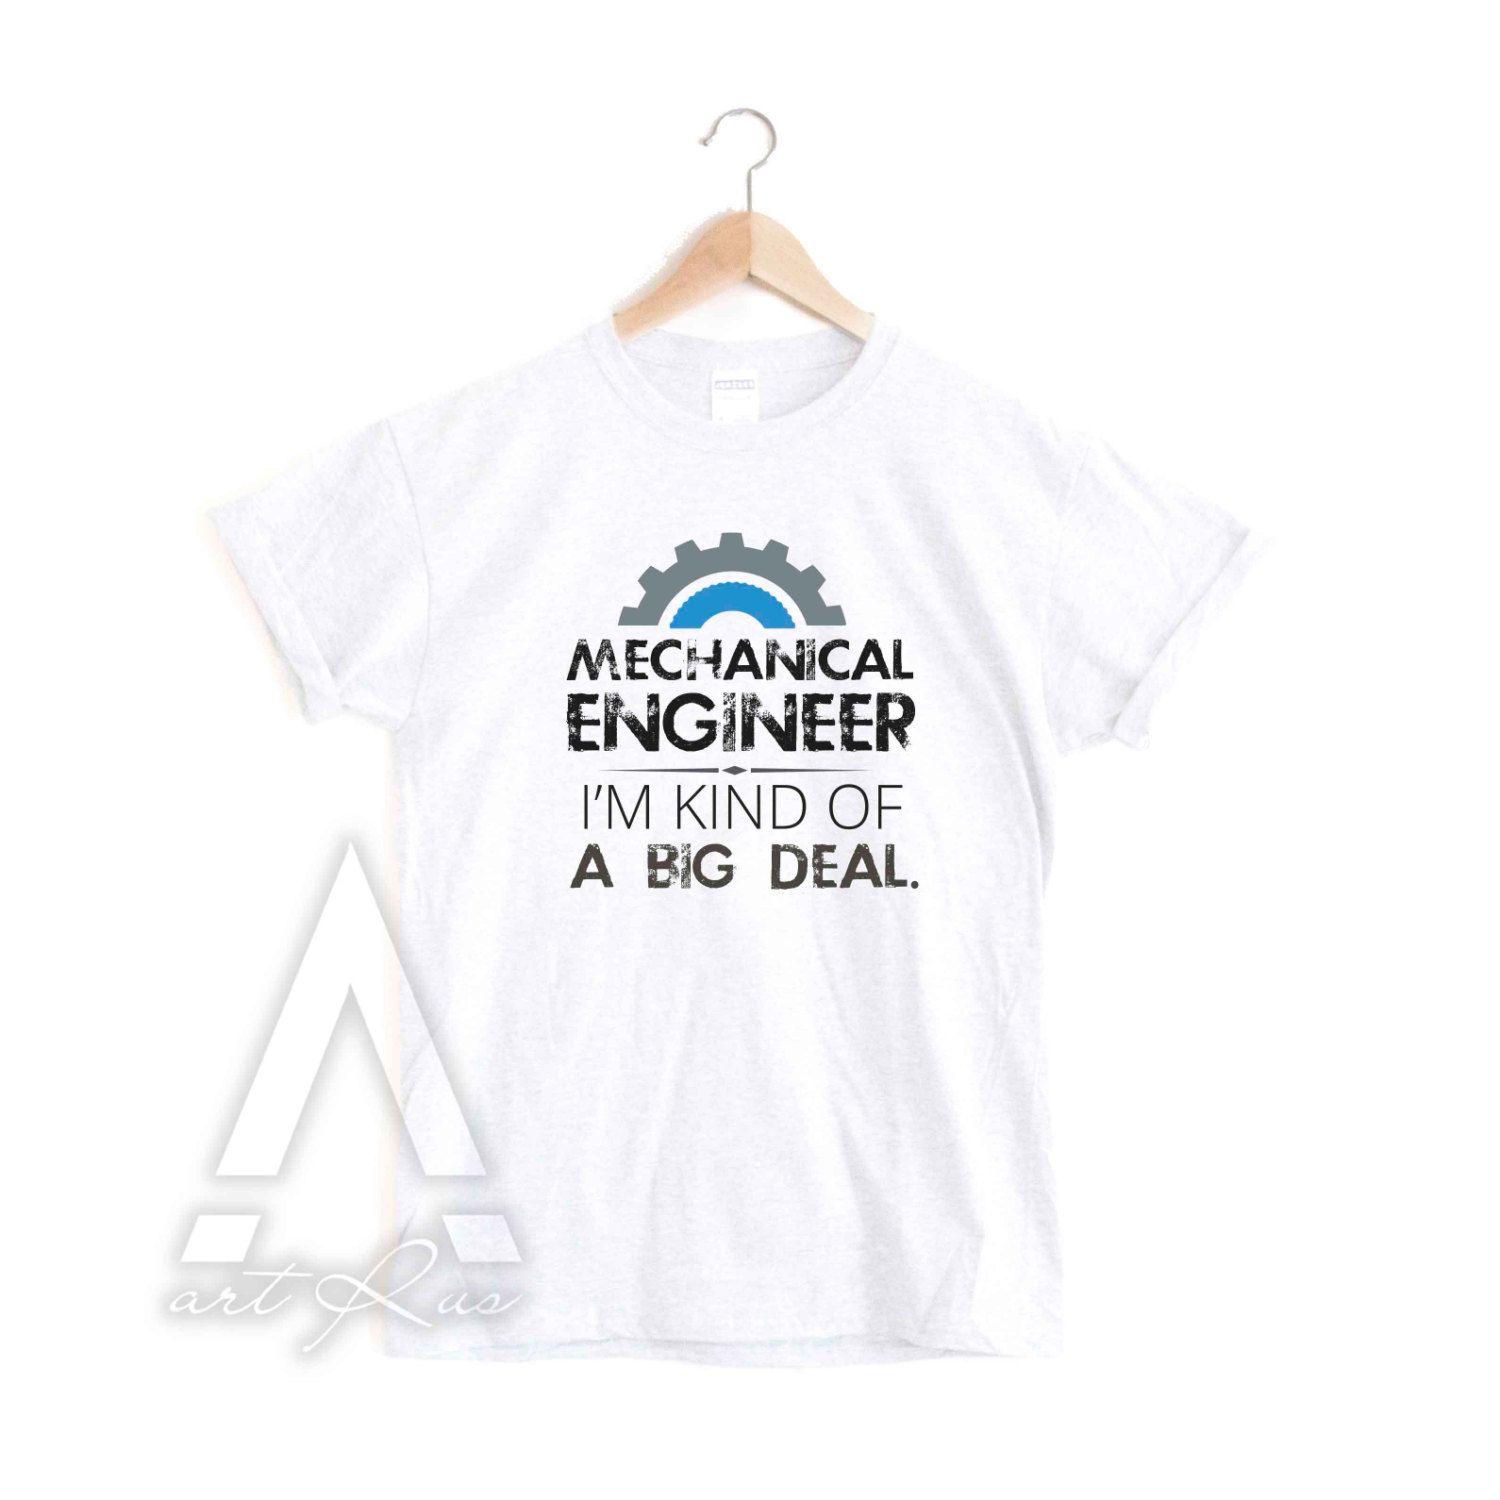 Christmas Gifts For Mechanical Engineers, Engineer Shirts, T Shirts, Holiday Gifts,